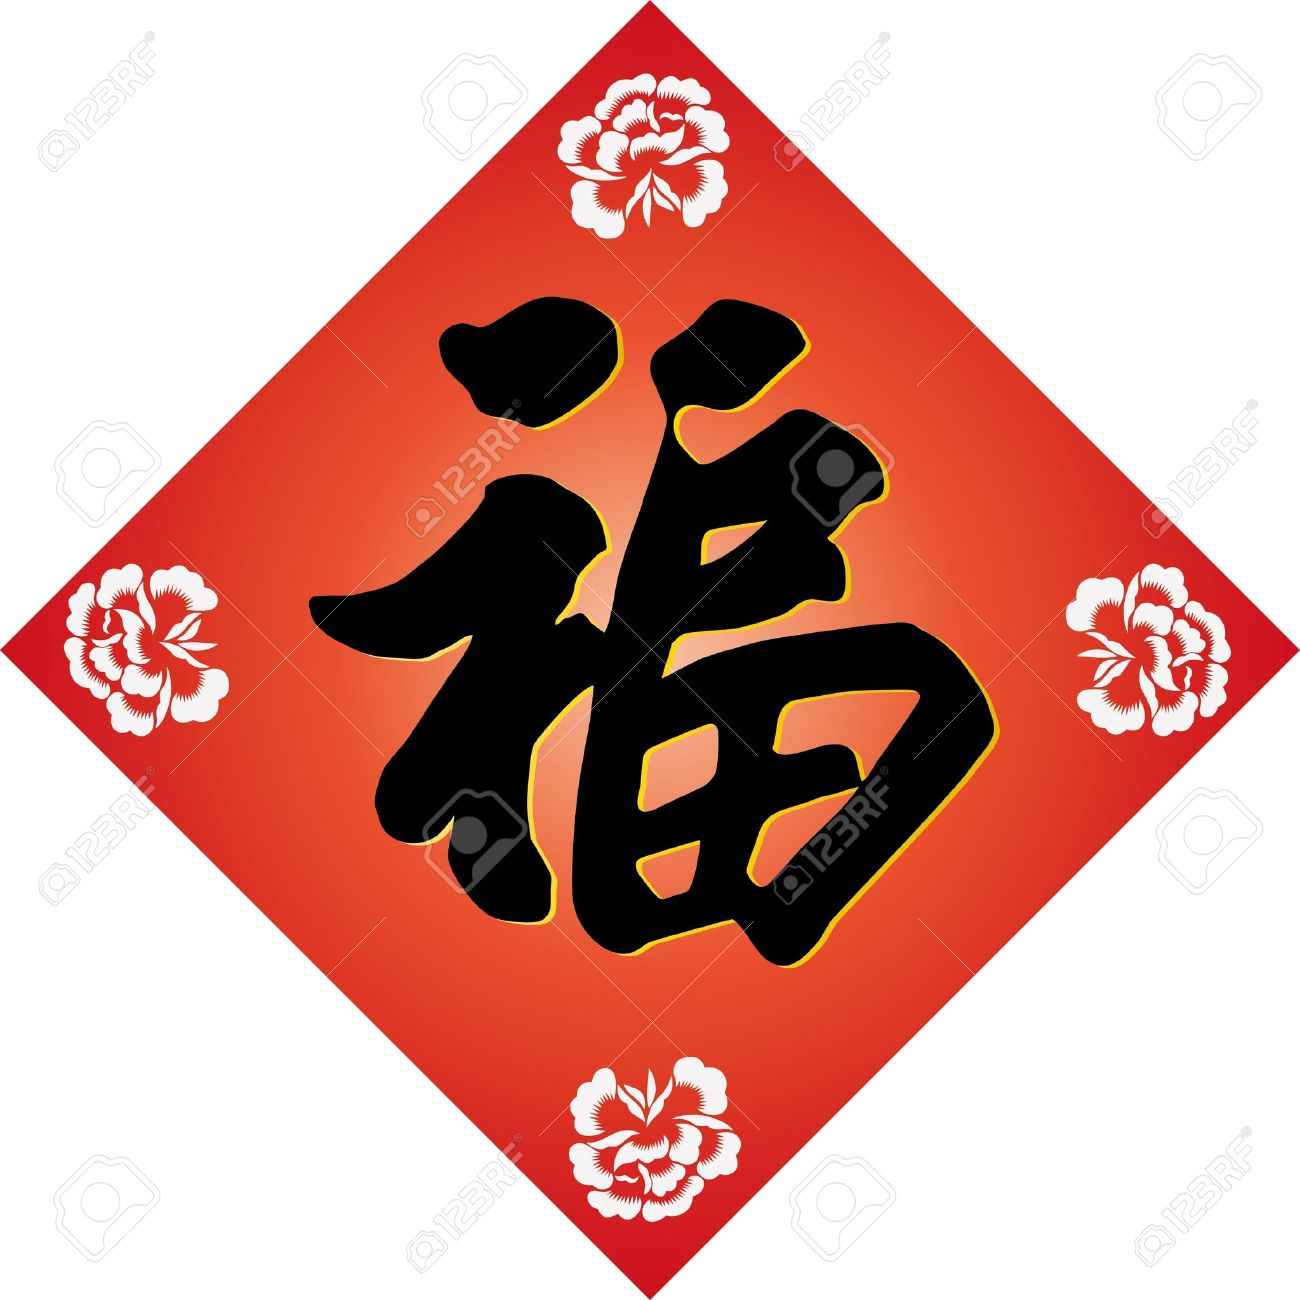 chinese fu festival spring royalty wealth proverb san financial generational security multi couplets vector generations beyond three does create financialsamurai